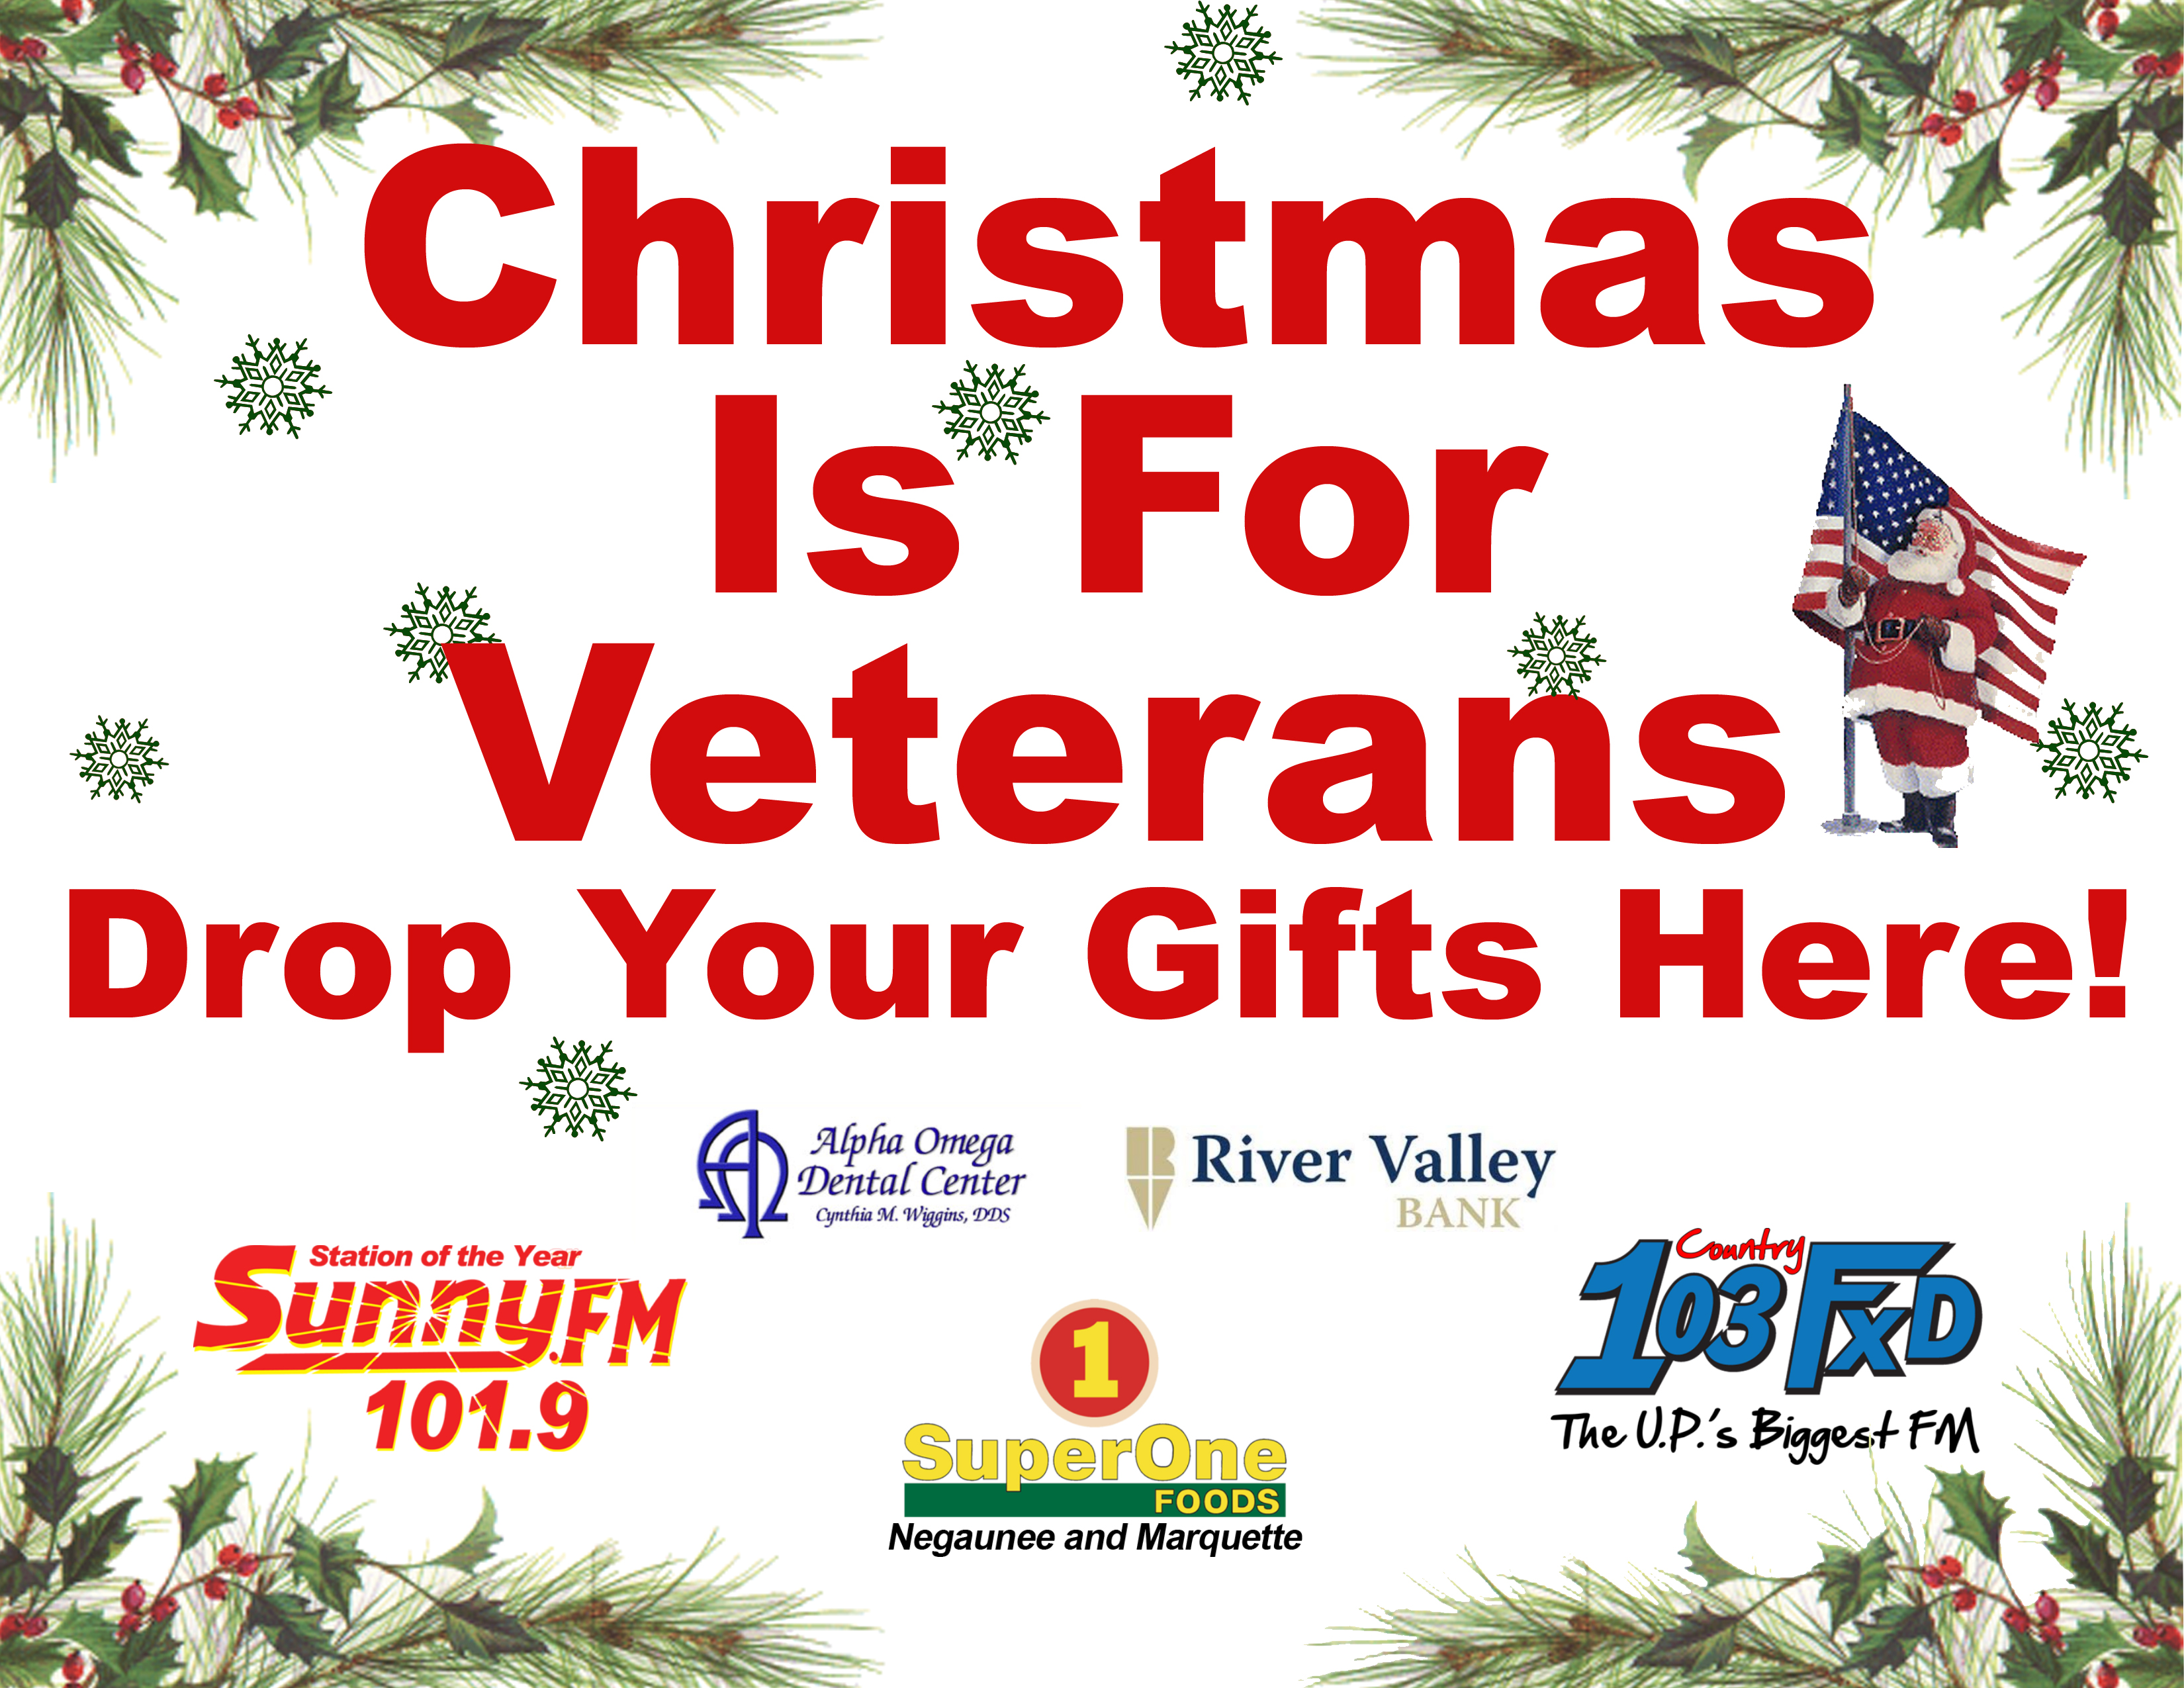 Donate an Item Off The Christmas is For Veterans Wish List for Our ...